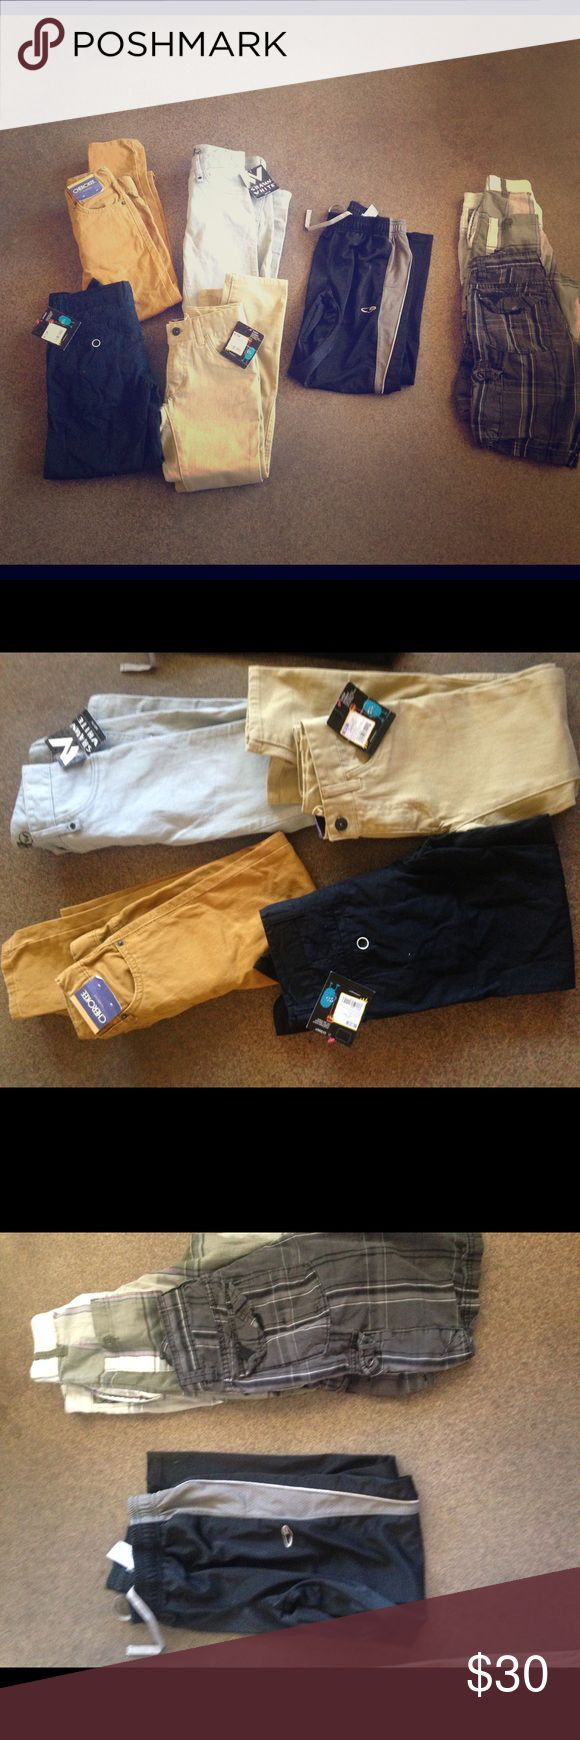 Boys size 8 back to school lot Shawn white NWT Awesome back to school lot with 3 pairs of brand new with tags boys Shawn white pants 1 pair of Cherokee NWT pants 1 pair C9 athletic pants and 3 pairs of plaid shorts(old Navy, vans) great deal considering tags on the pants range from $17-20 piece Shawn white Bottoms Jeans